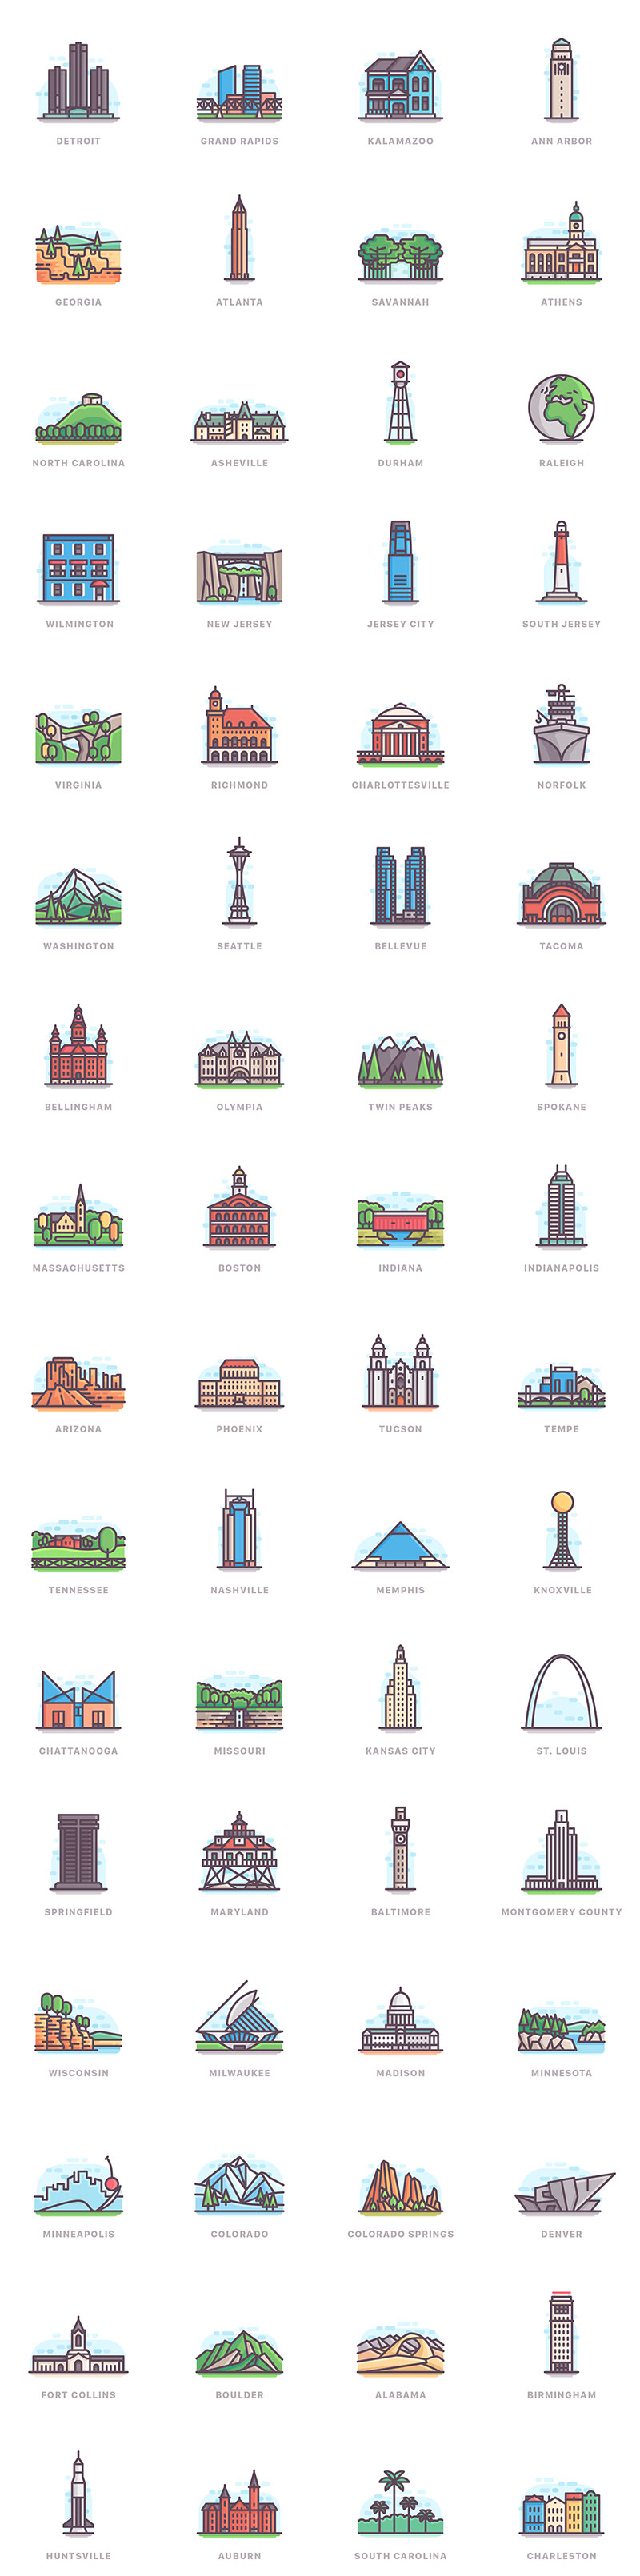 The city architectural illustration style thumbnail